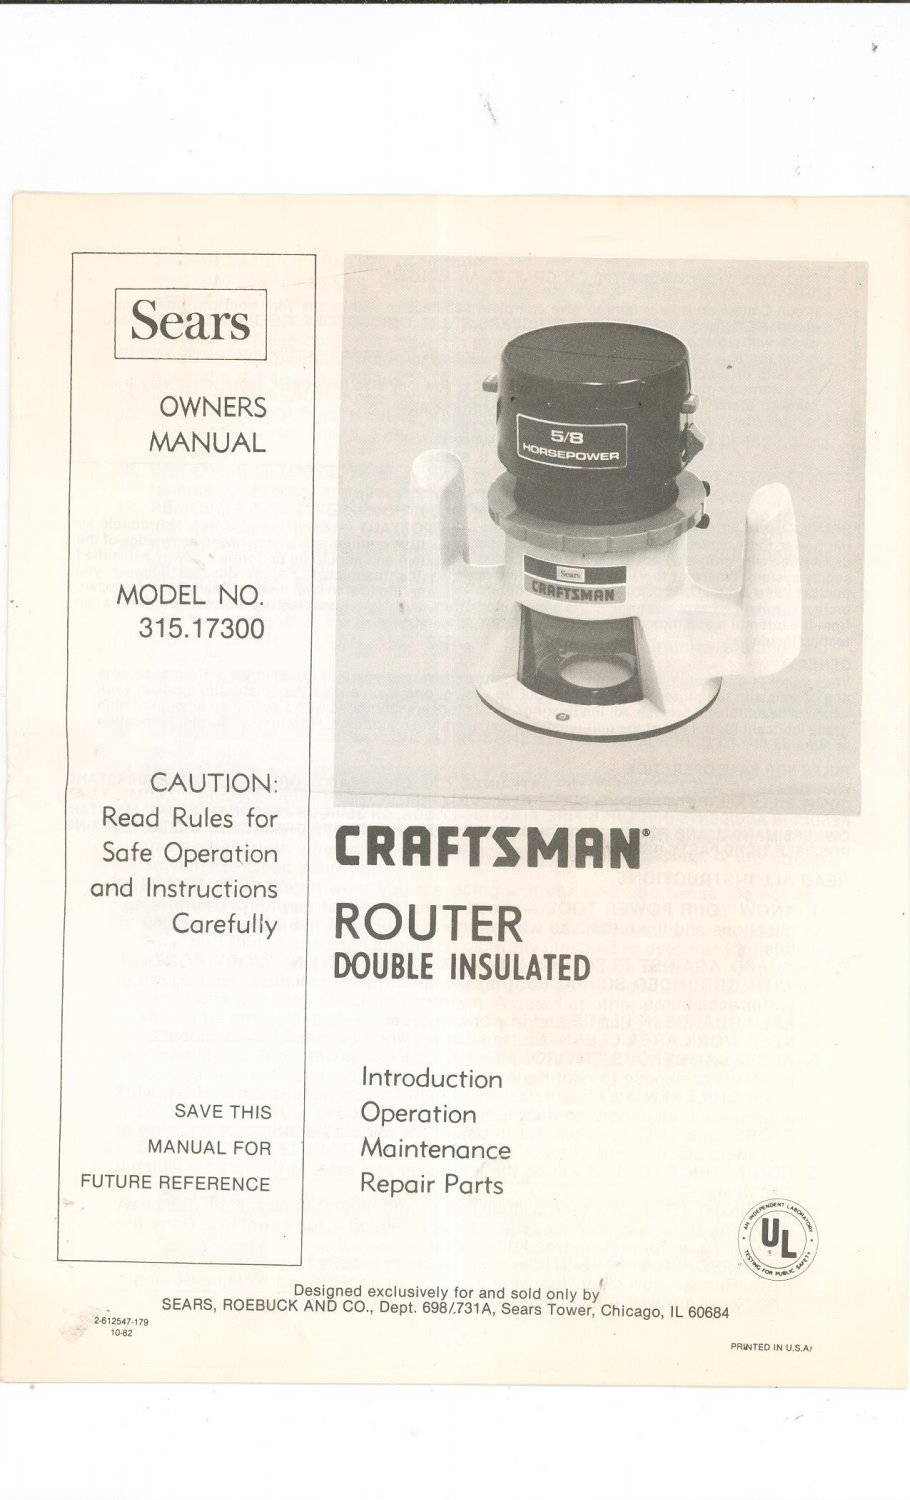 craftsman router model 315.174710 manual